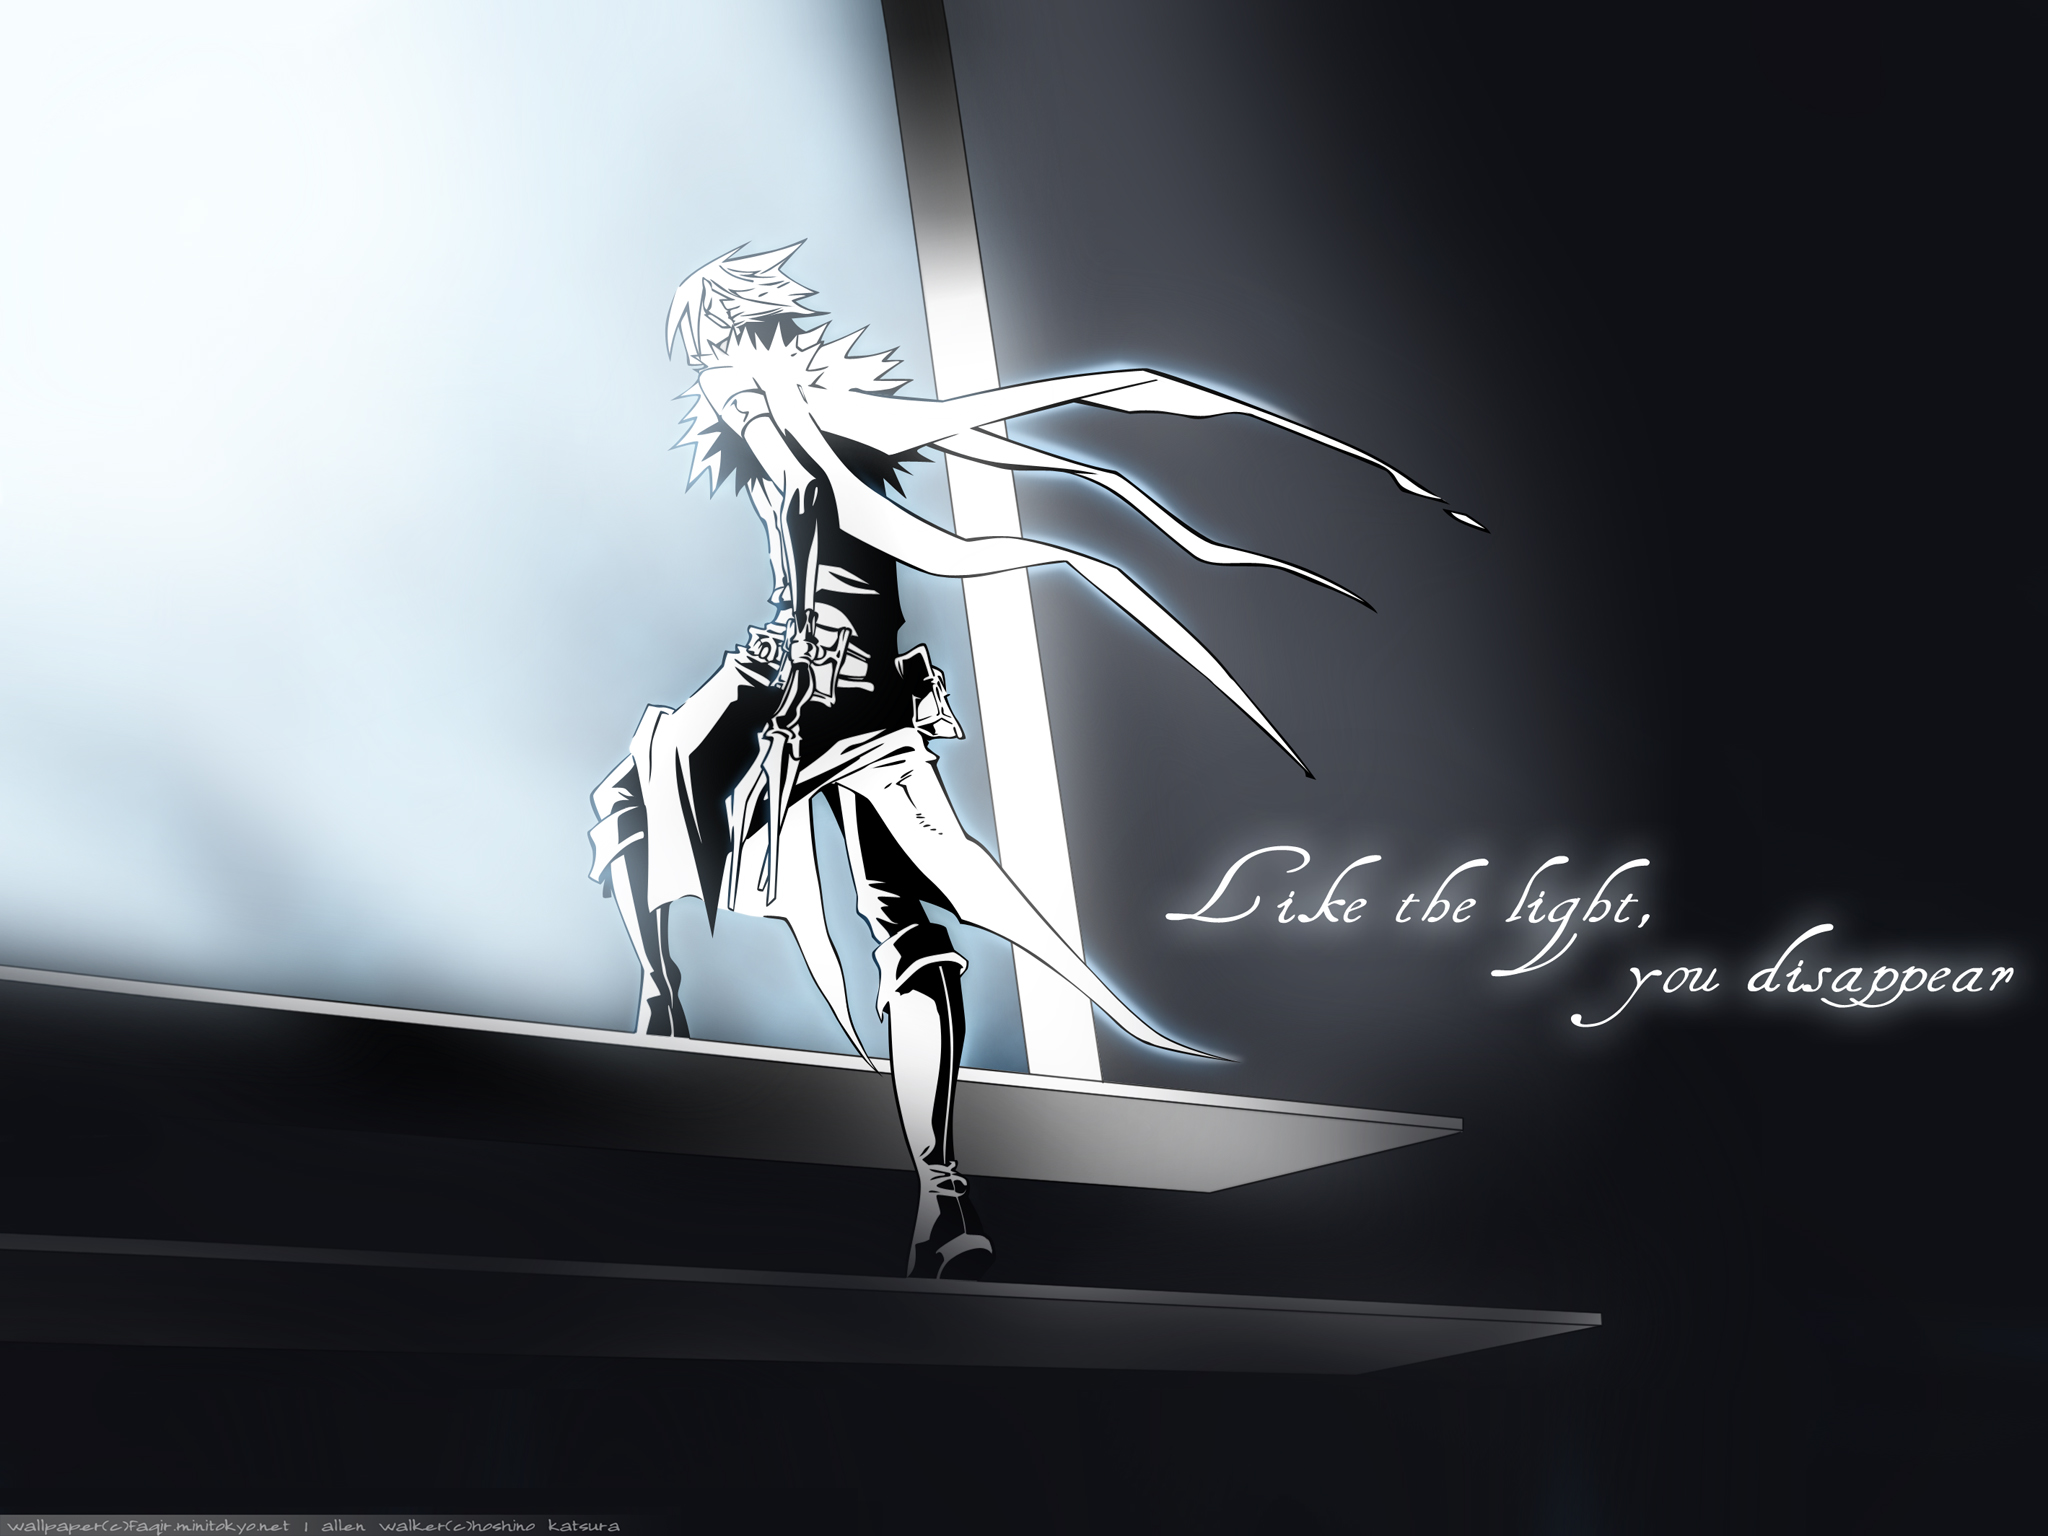 D gray man d gray man wallpaper 25484306 fanpop - D gray man images ...